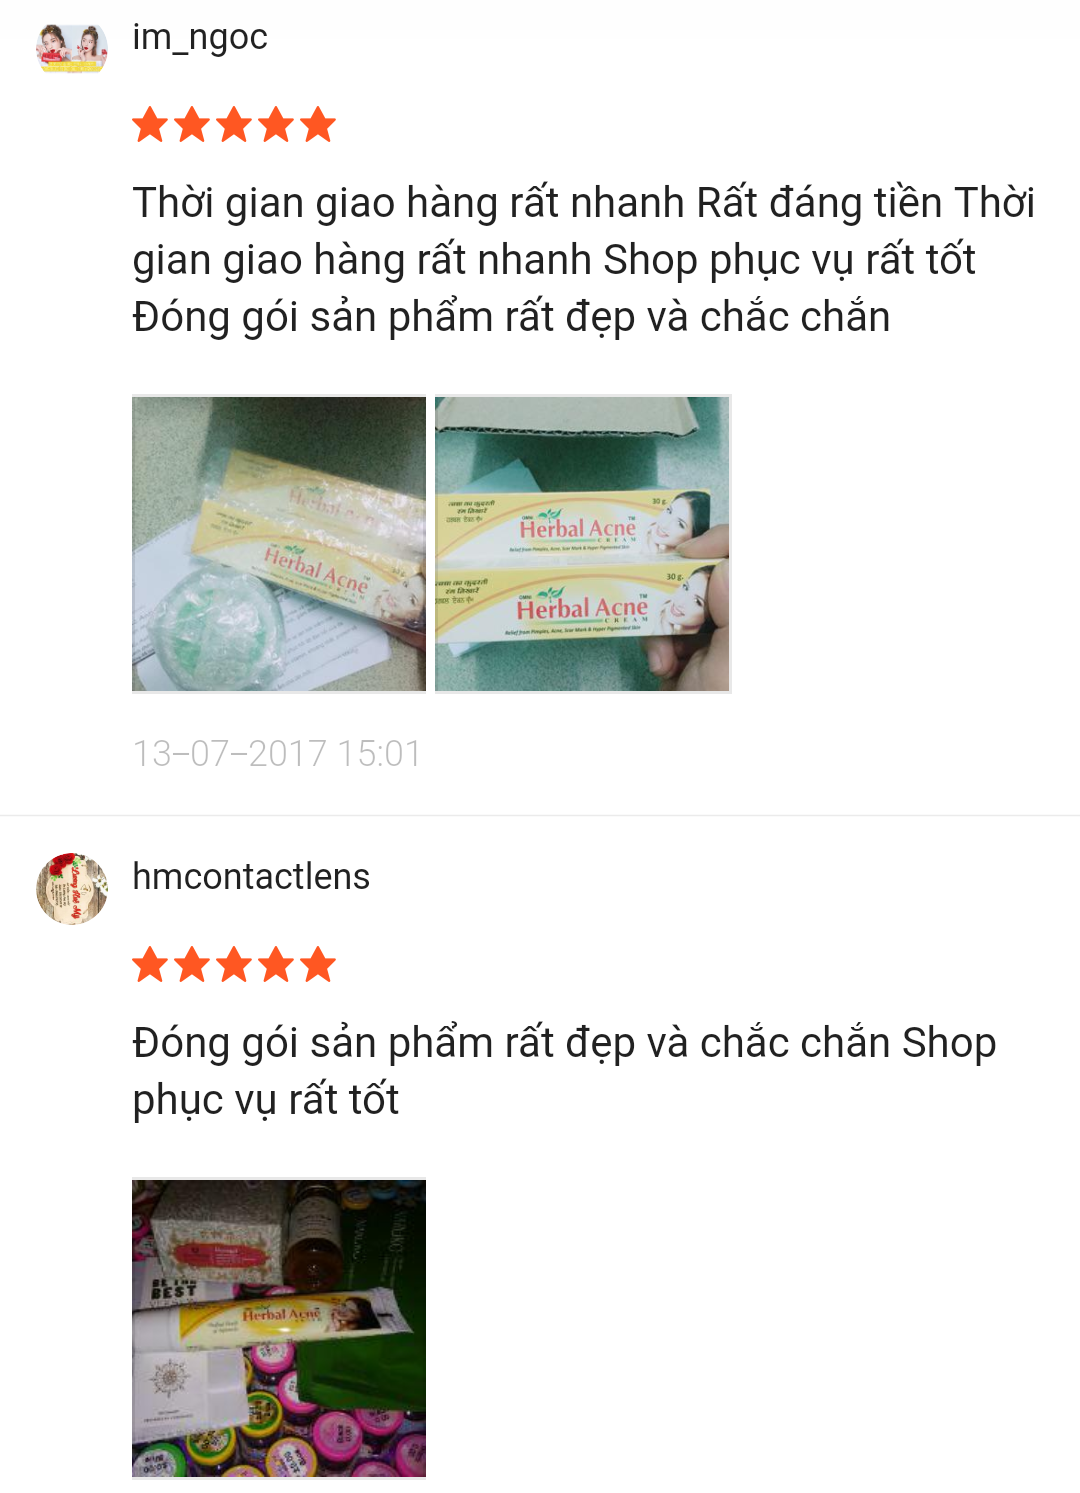 rew Herbal acne trên Shopee